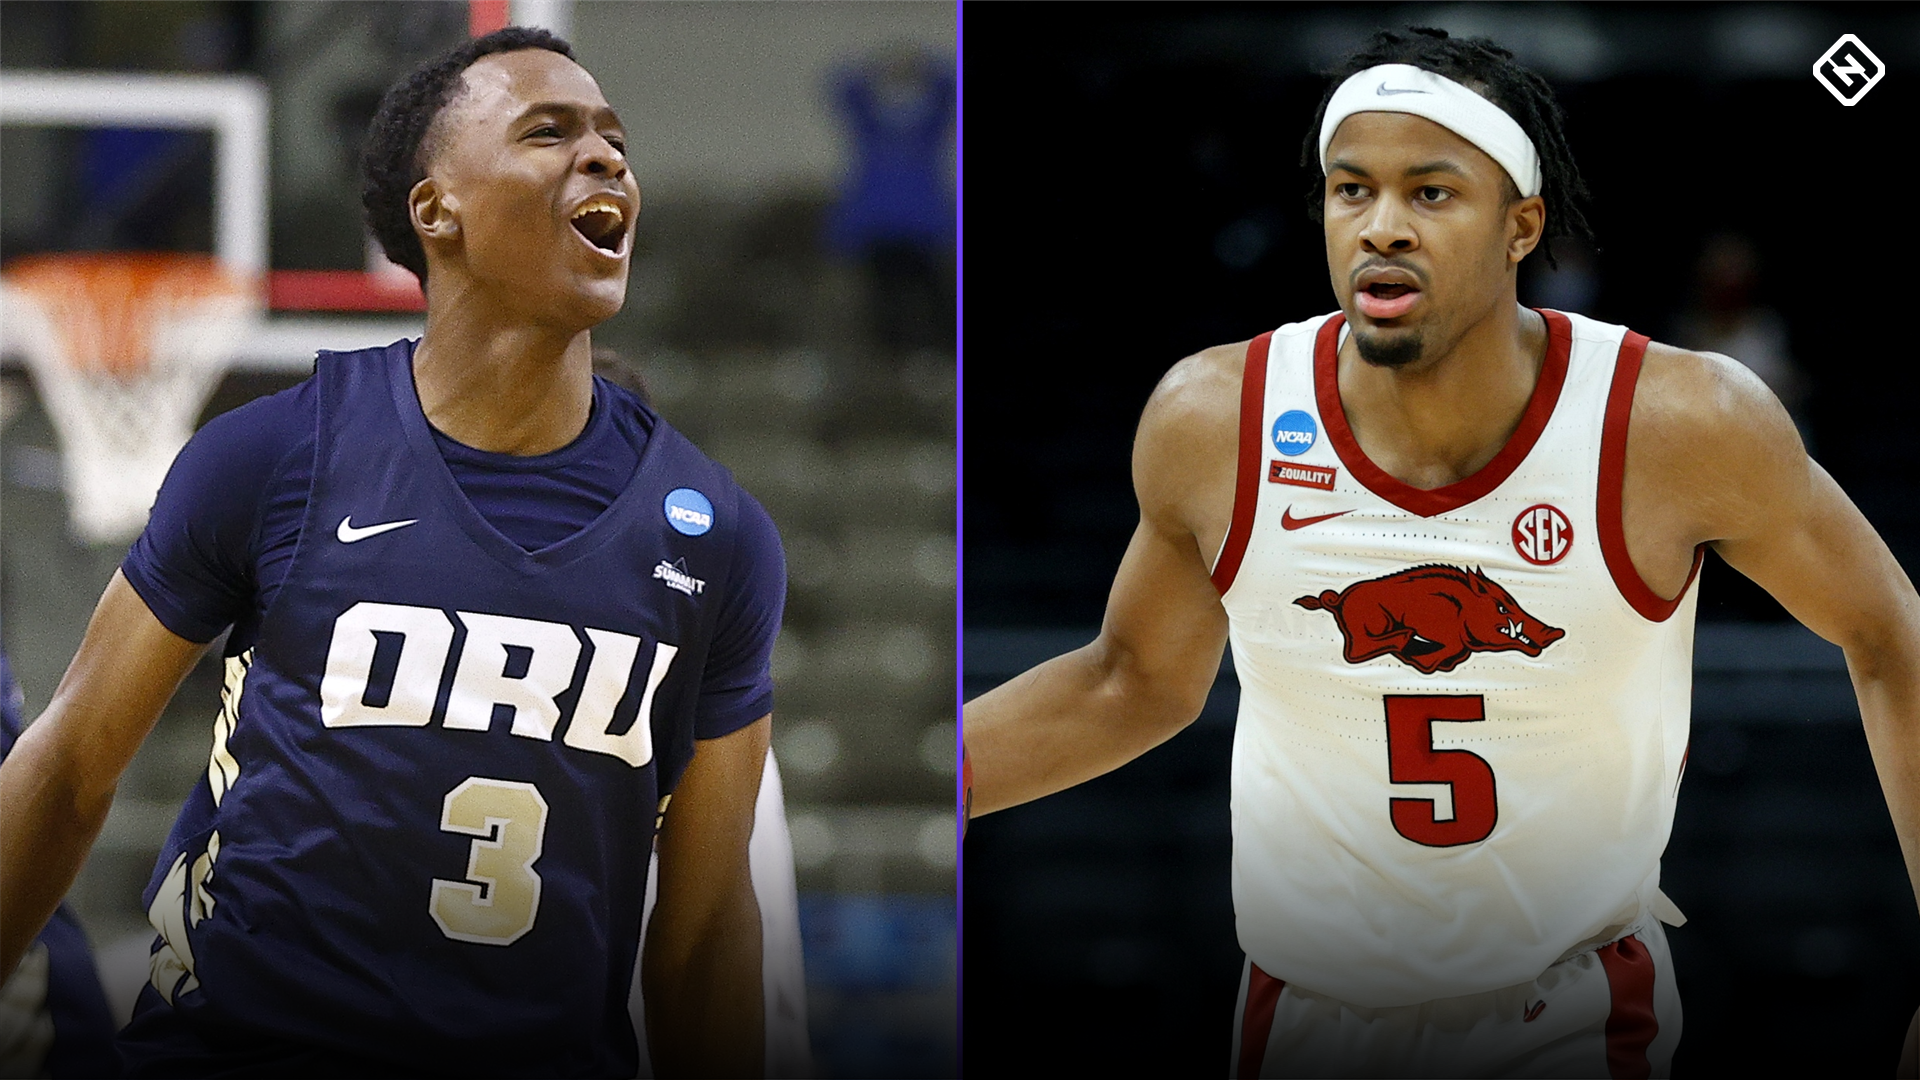 Arkansas vs. Oral Roberts odds, picks, predictions for March Madness Sweet 16 game